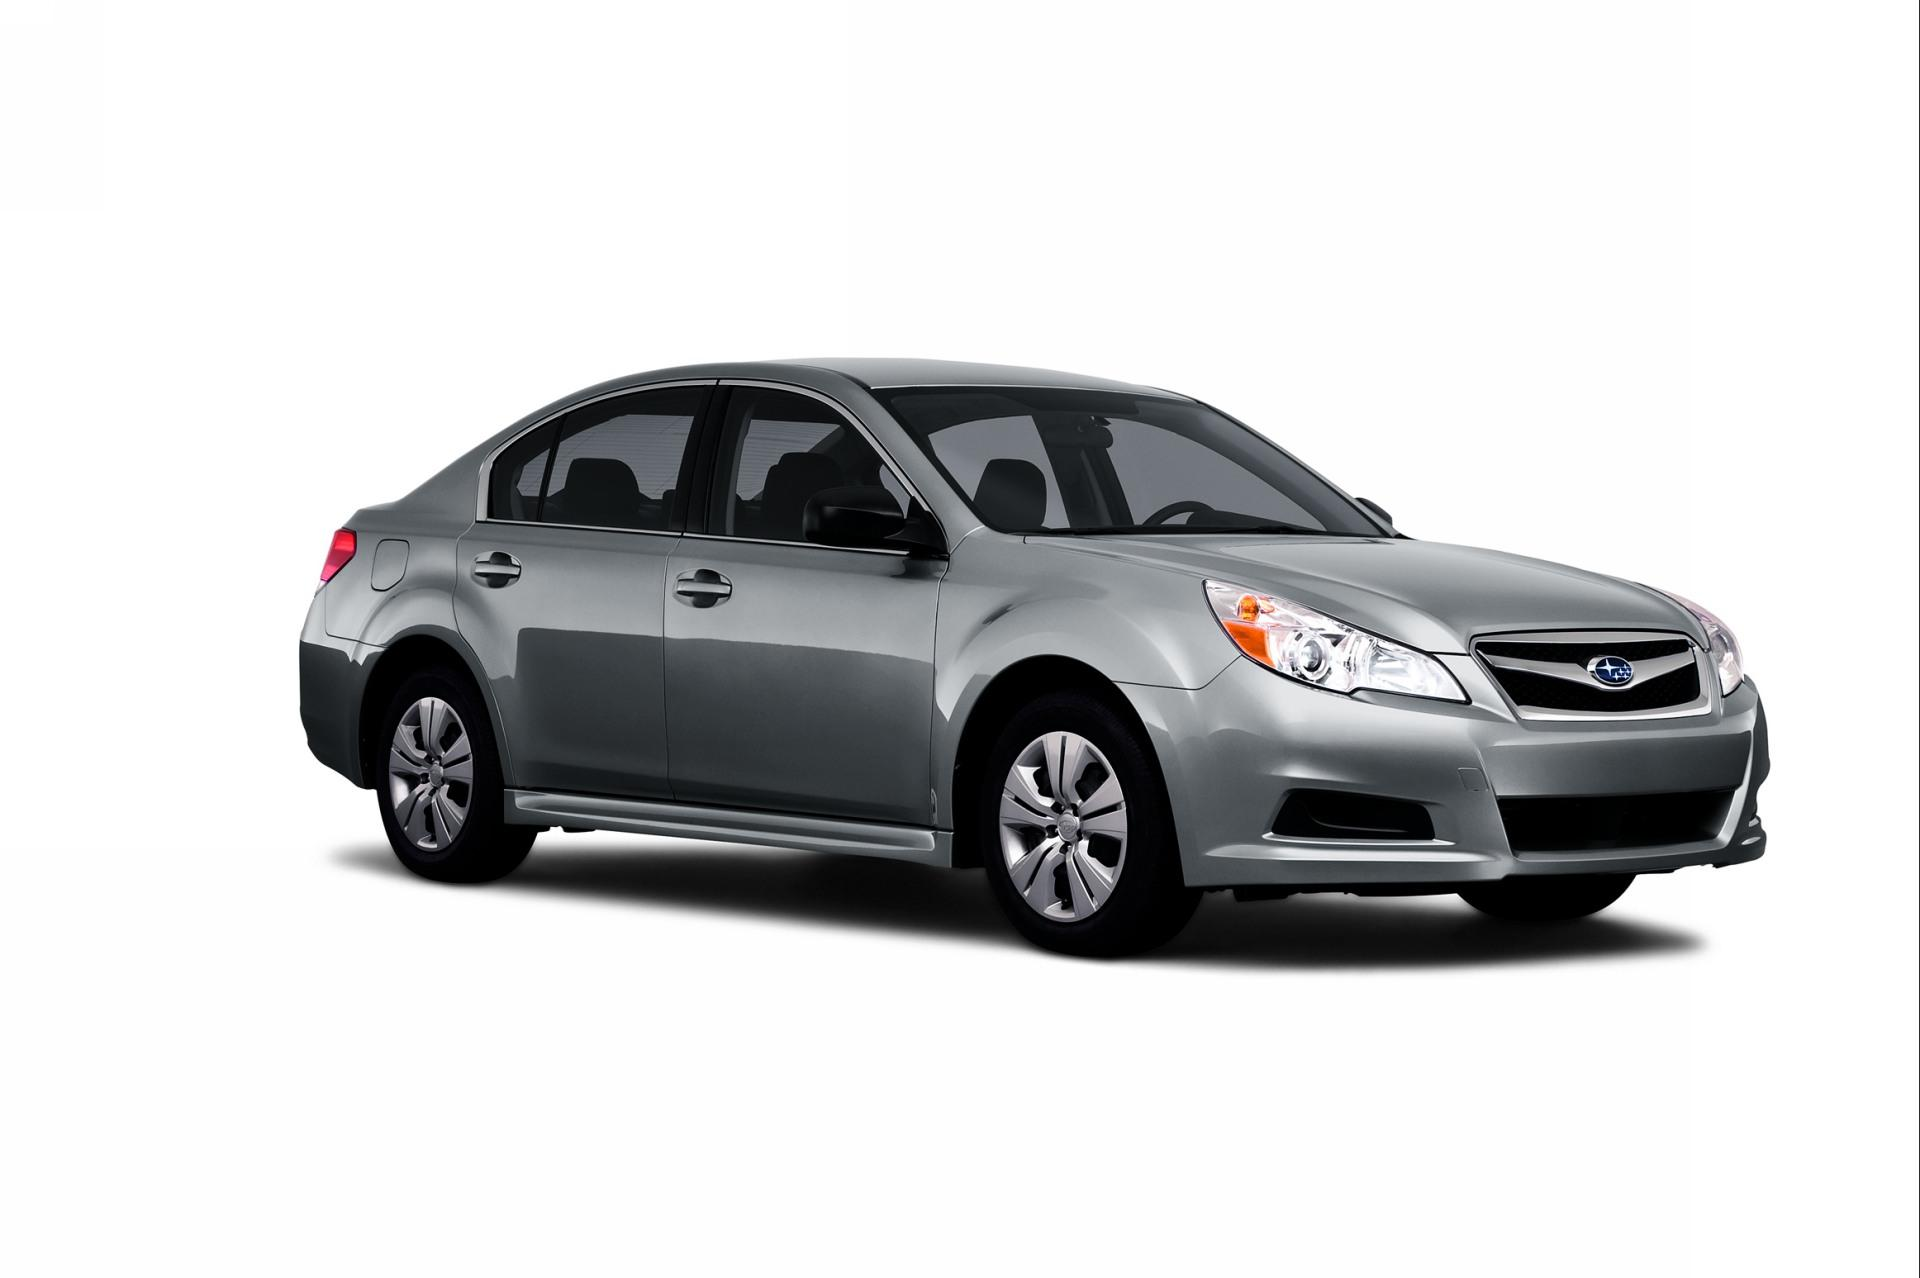 2011 subaru legacy. Black Bedroom Furniture Sets. Home Design Ideas